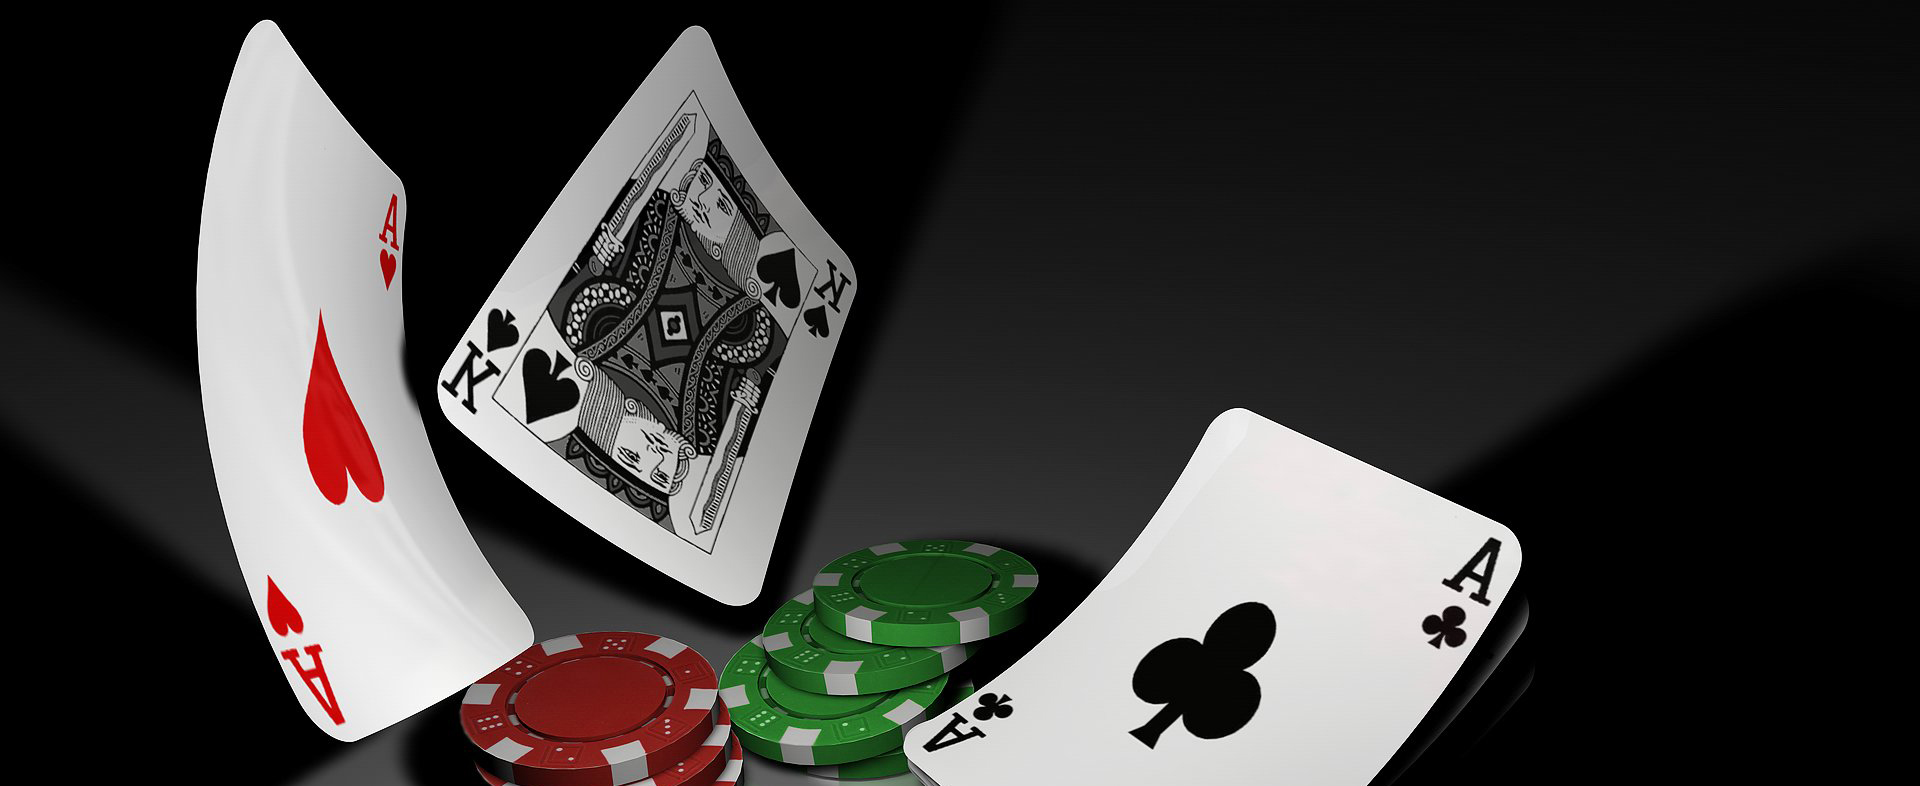 10 surprising facts you should know about poker